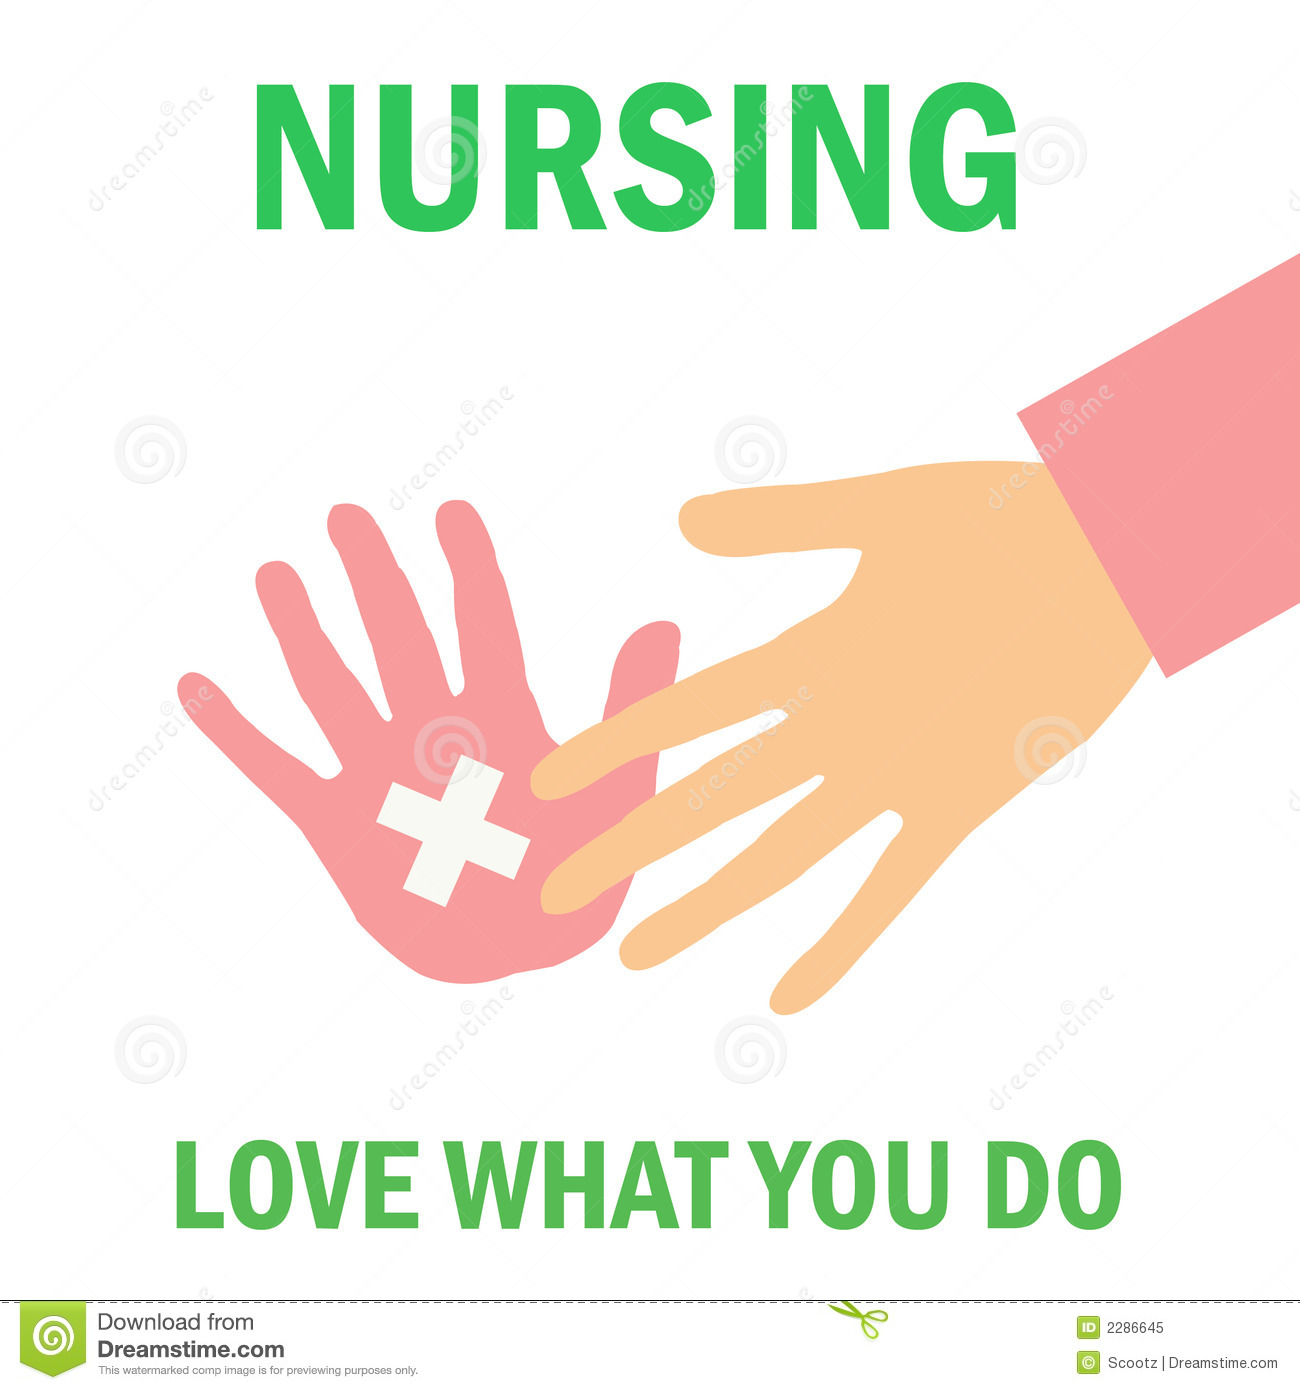 Poster Photos Nursing Poster Royalty Free Stock Photo Image 2286645